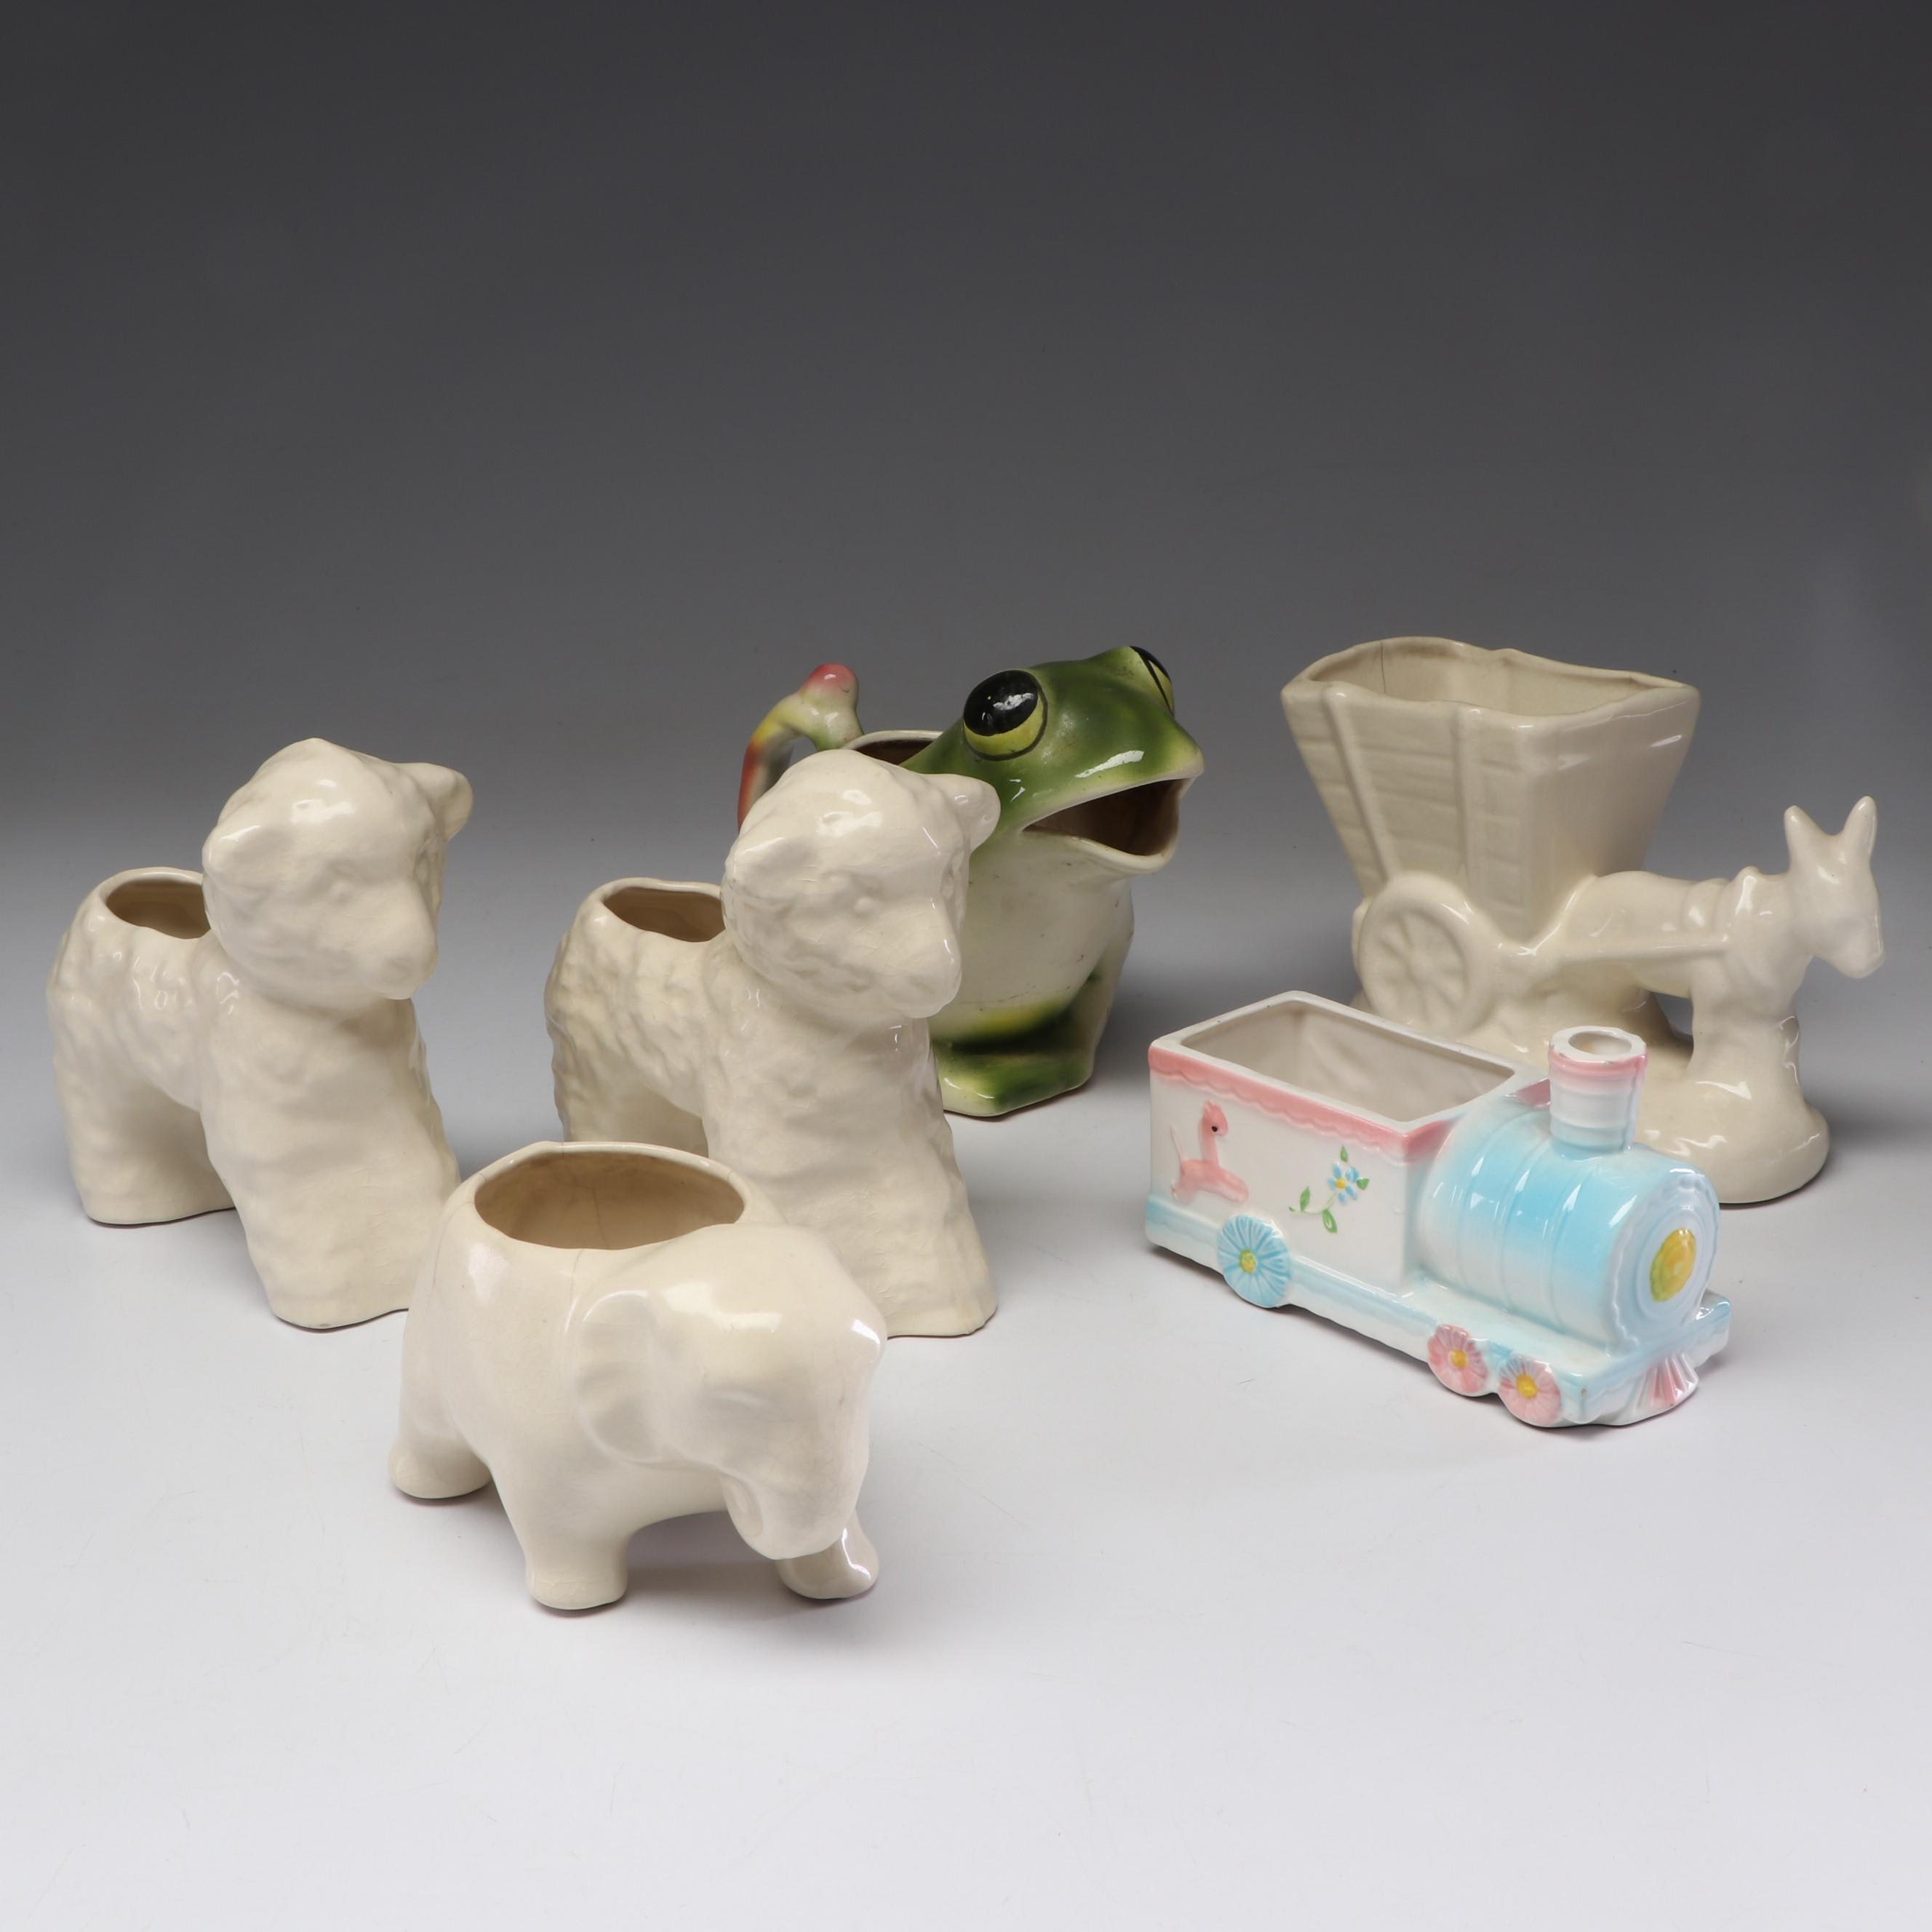 Vintage Figural Ceramic Planters and Watering Can